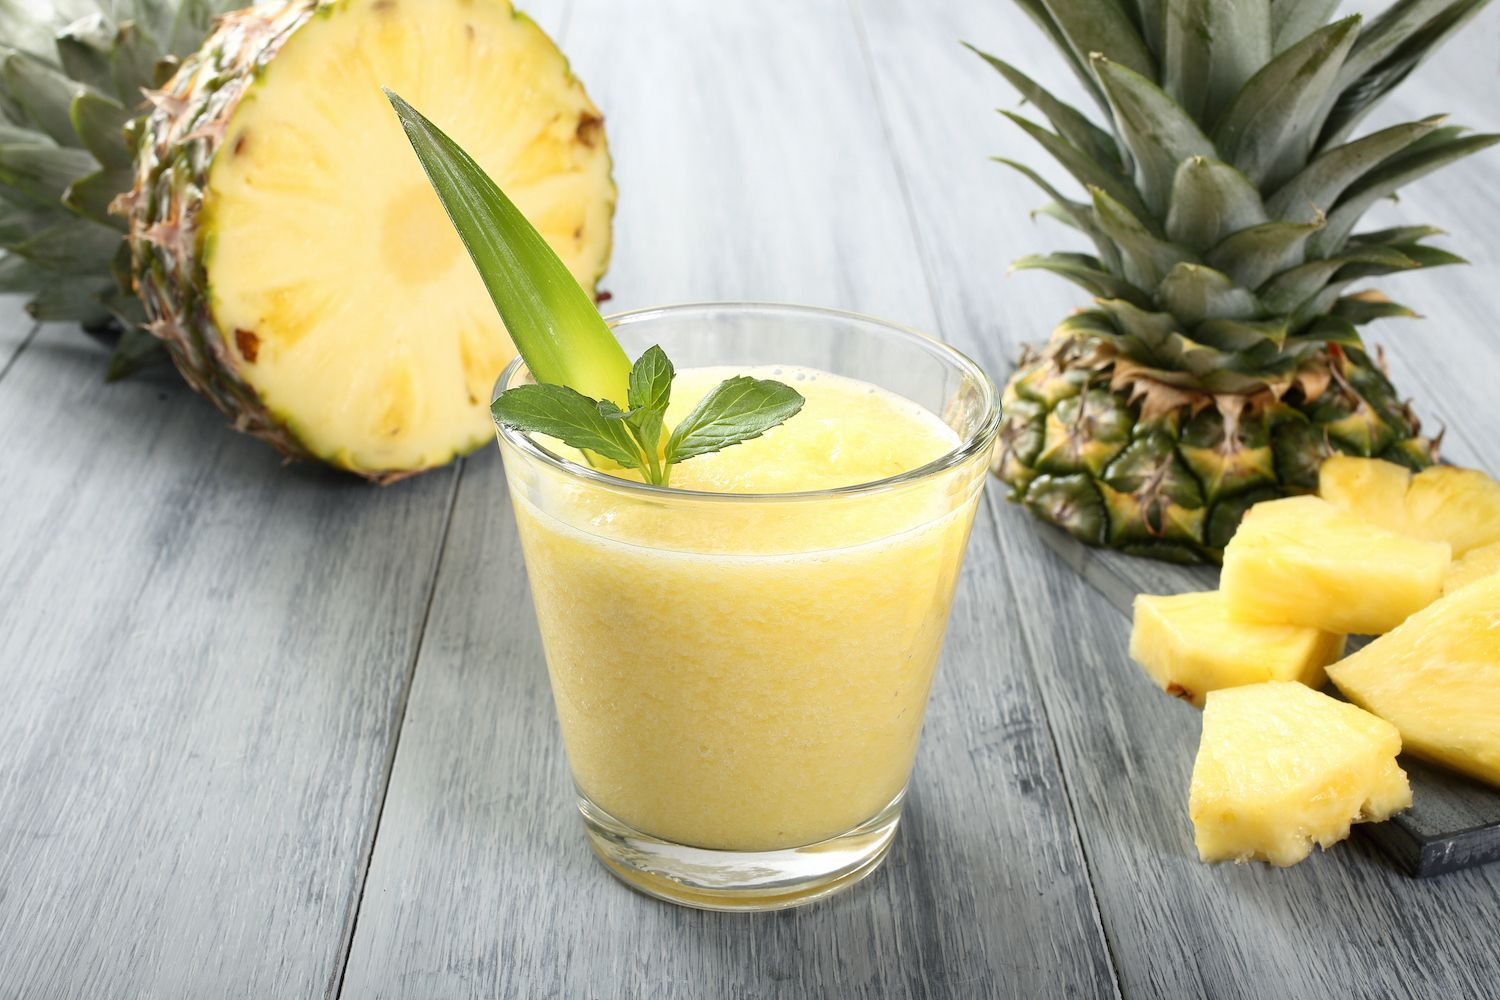 Mango Smoothie: The Yellow Mango Tango